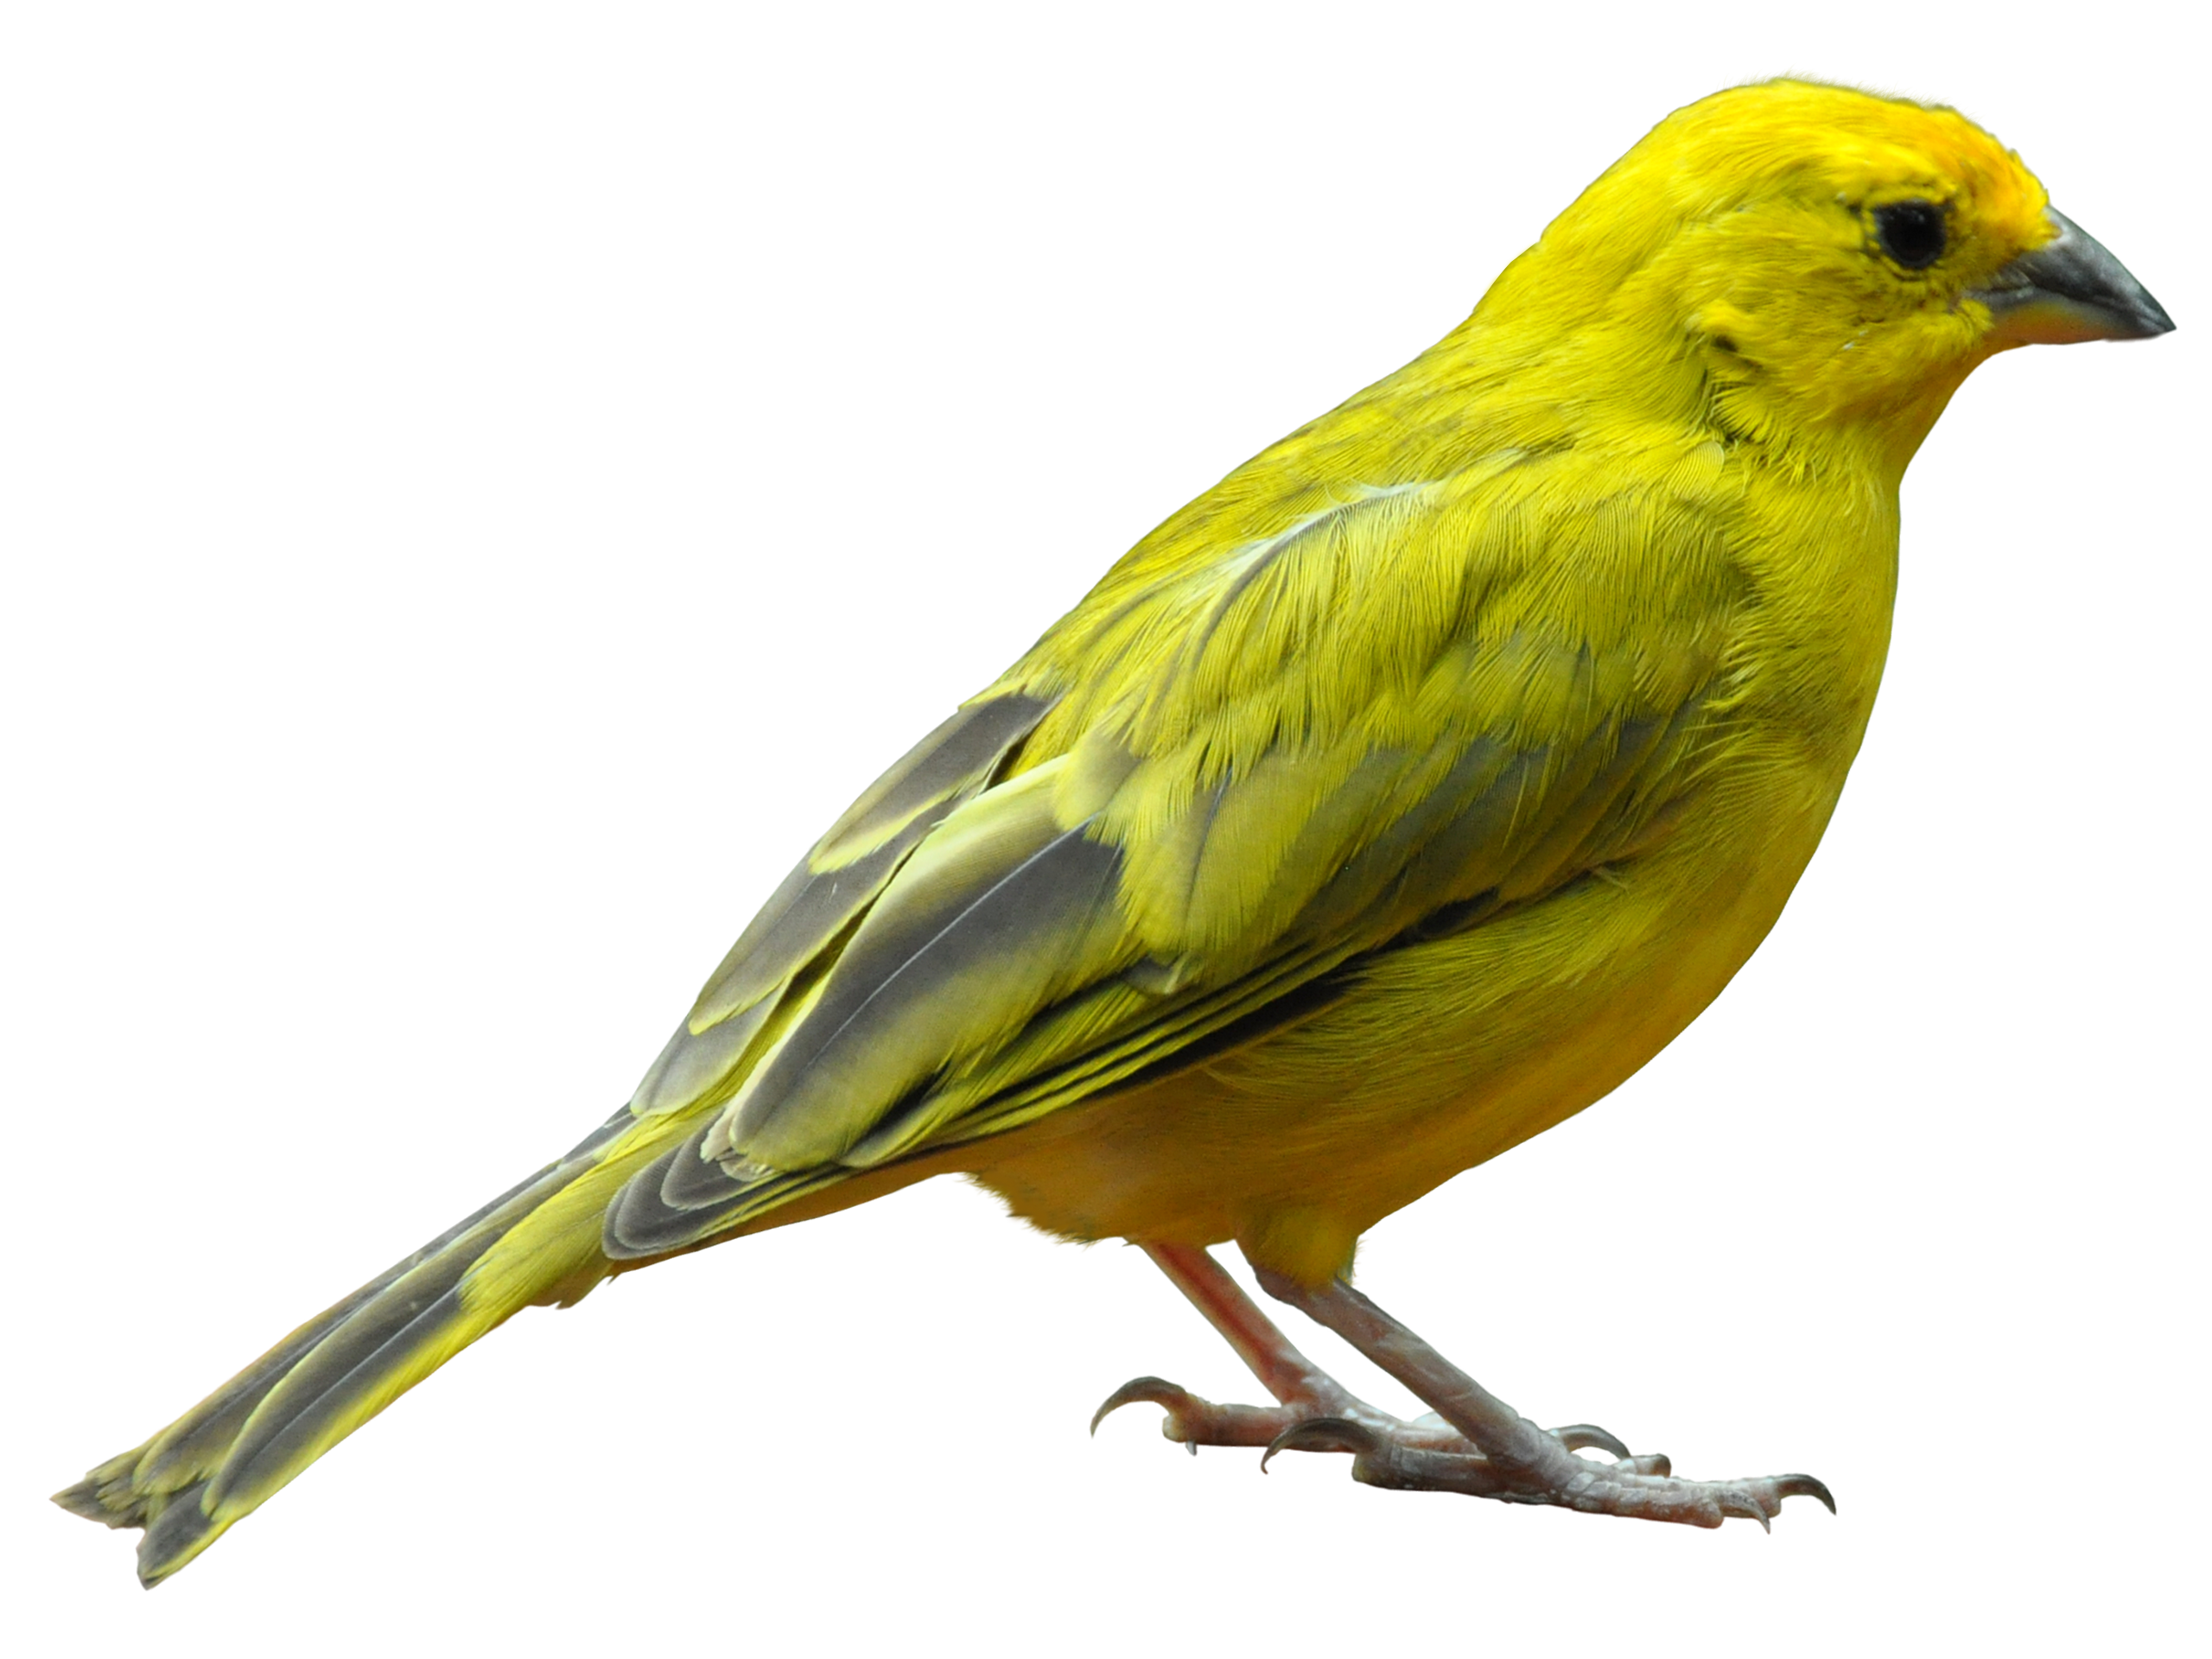 Any One 1 6 Jaeger Birds Hd Wallpapers: Yellow Bird Standing PNG Image - PurePNG